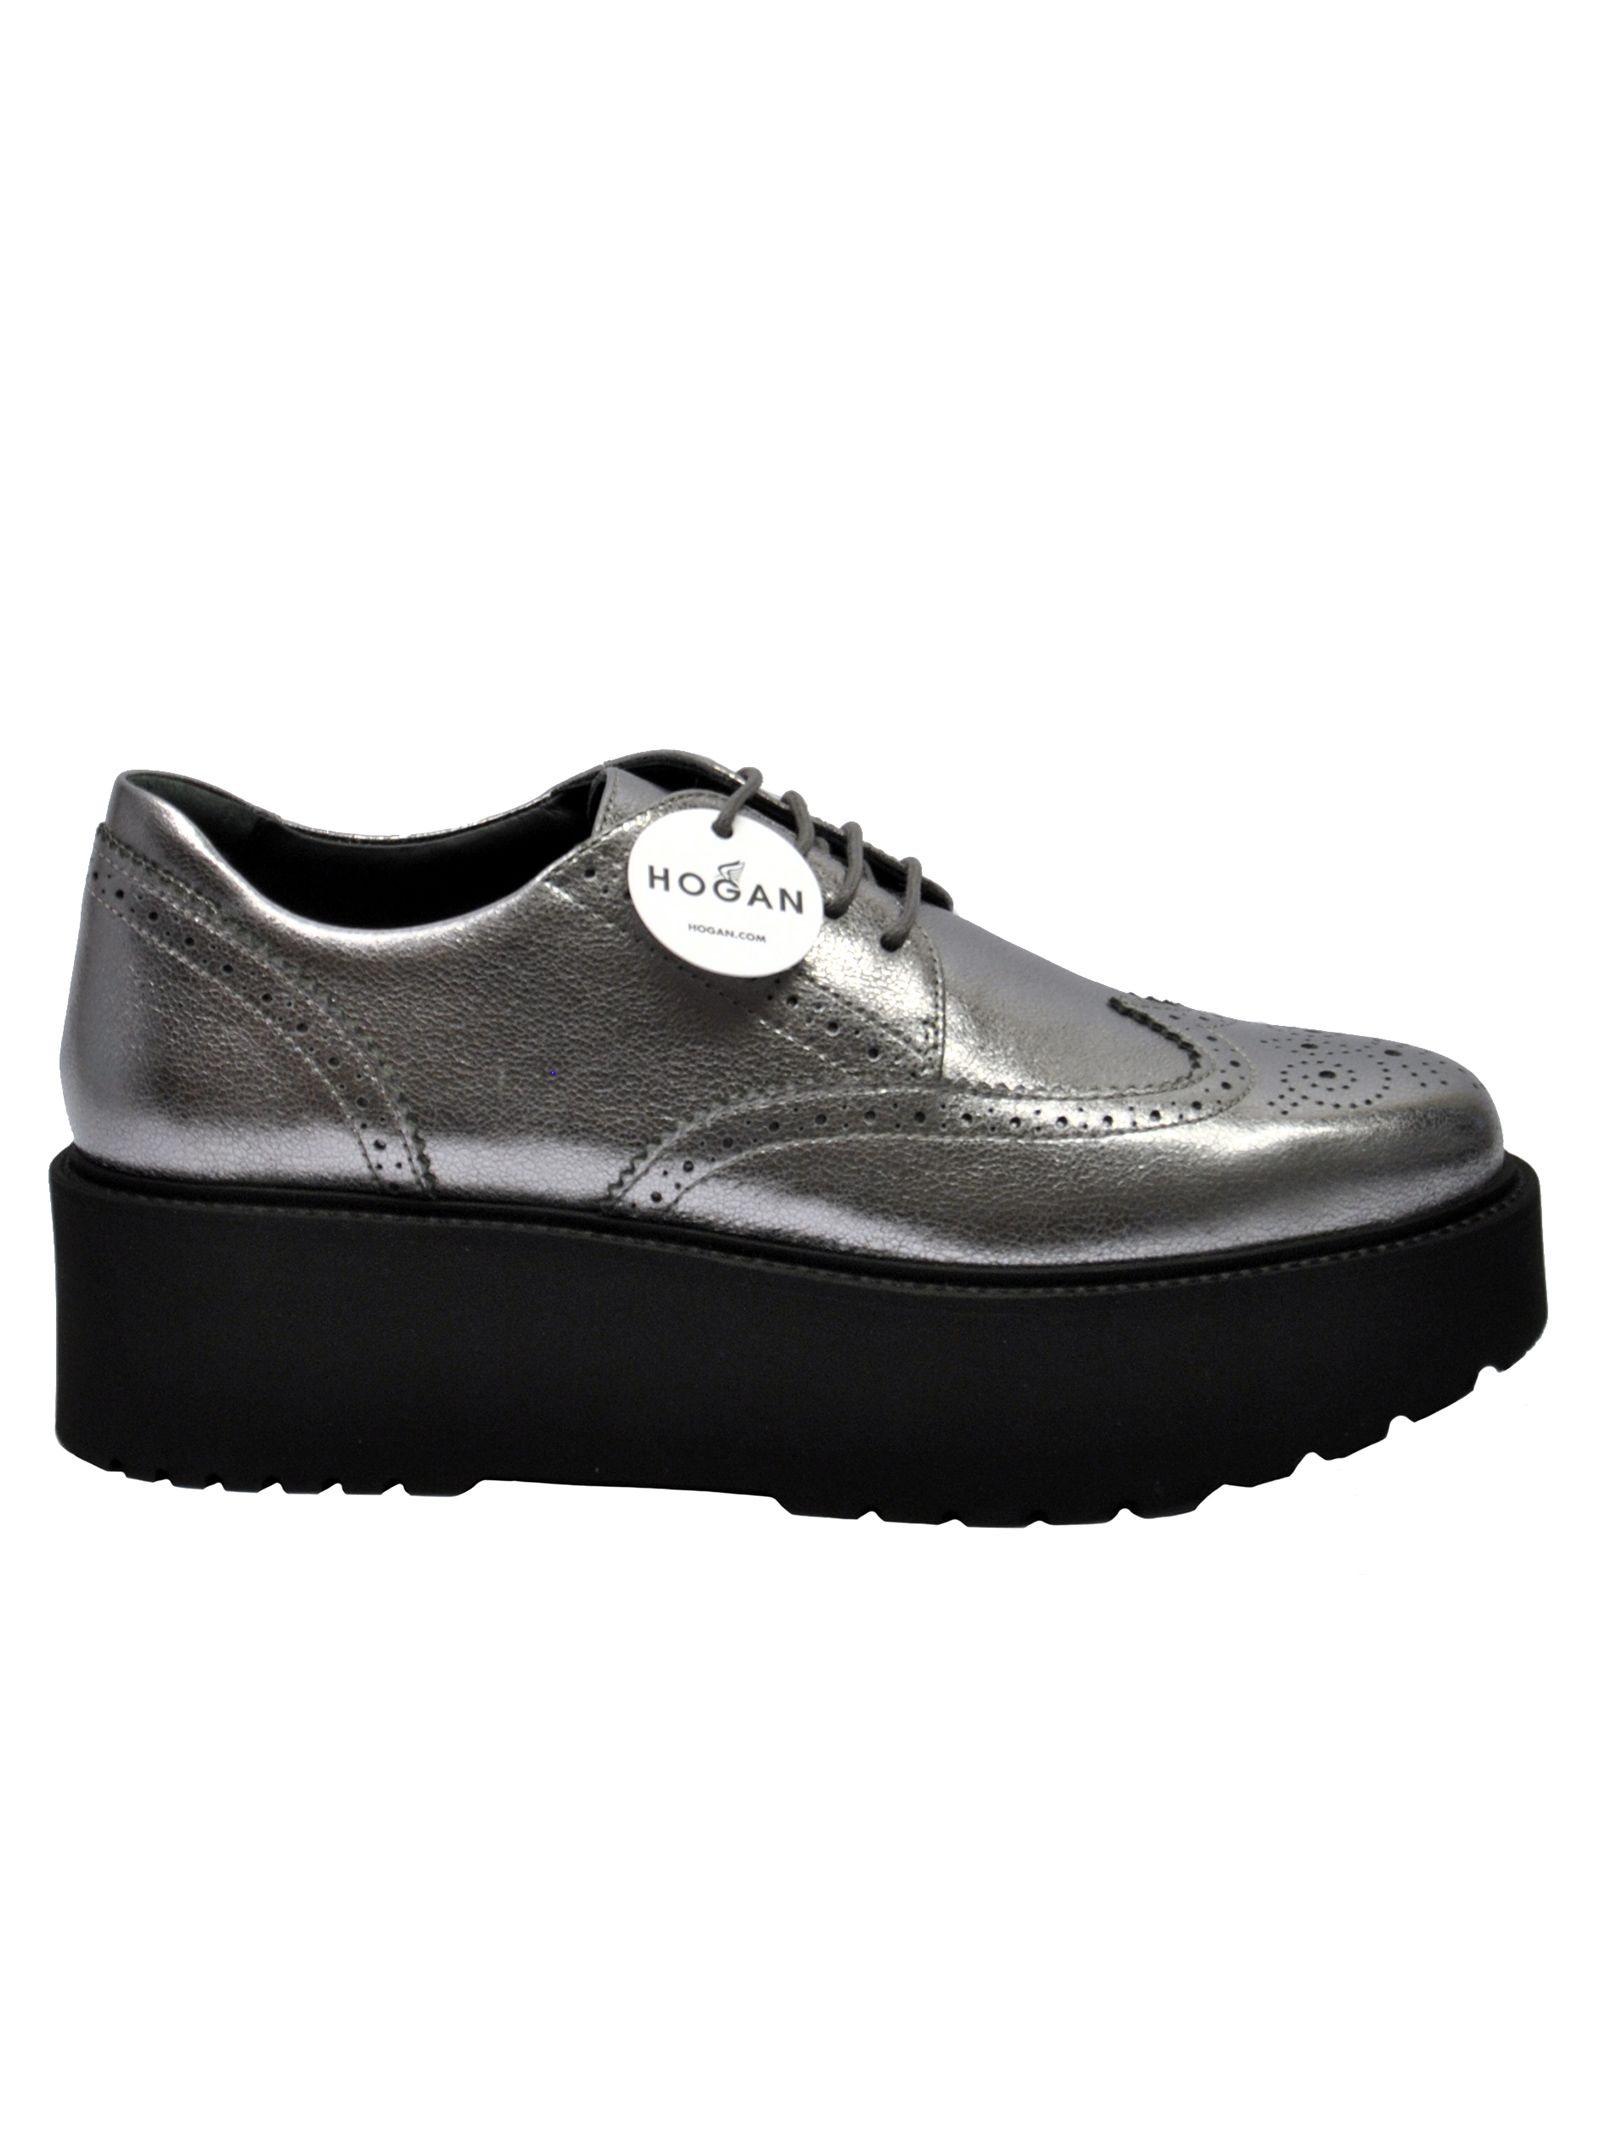 Route Brogues Platform Lace-Up Shoes in Piombo